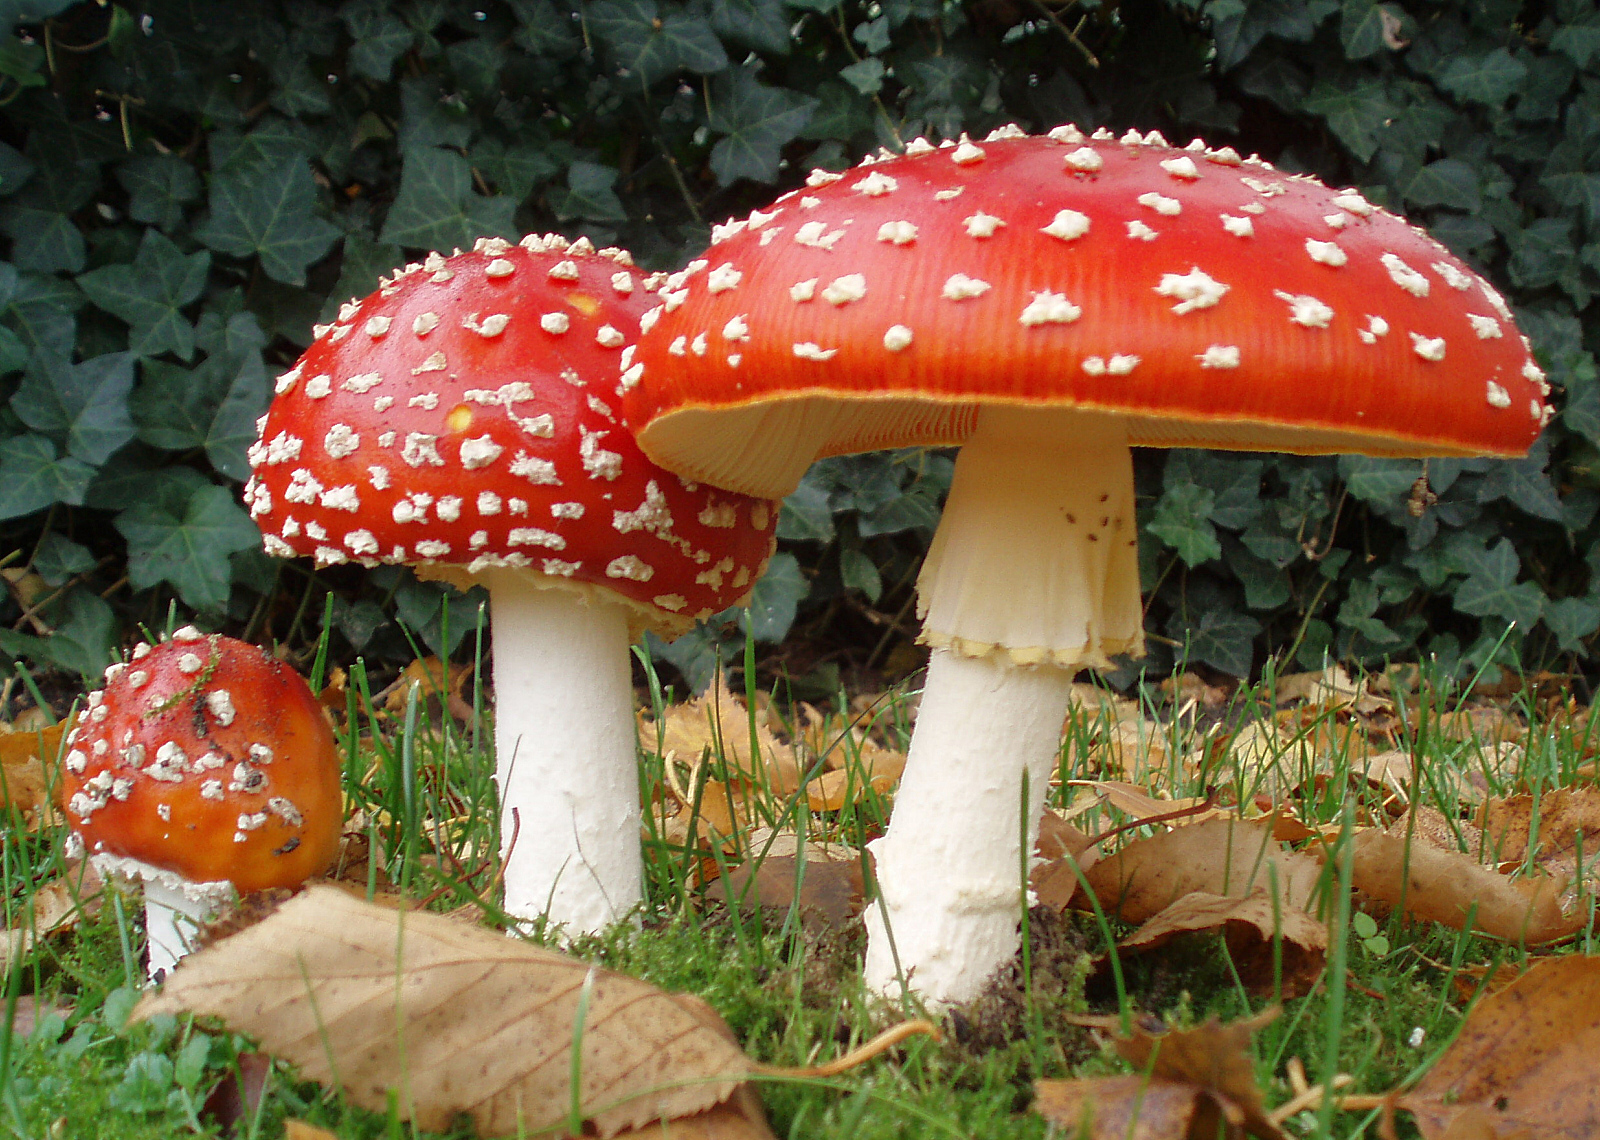 New Profitable Statistical Research Report on Mushroom Market 2019 with Profiling Global Key Players Like Bonduelle Fresh Europe,Christiaens Group,Costa Group,Drinkwater's Mushrooms Limited